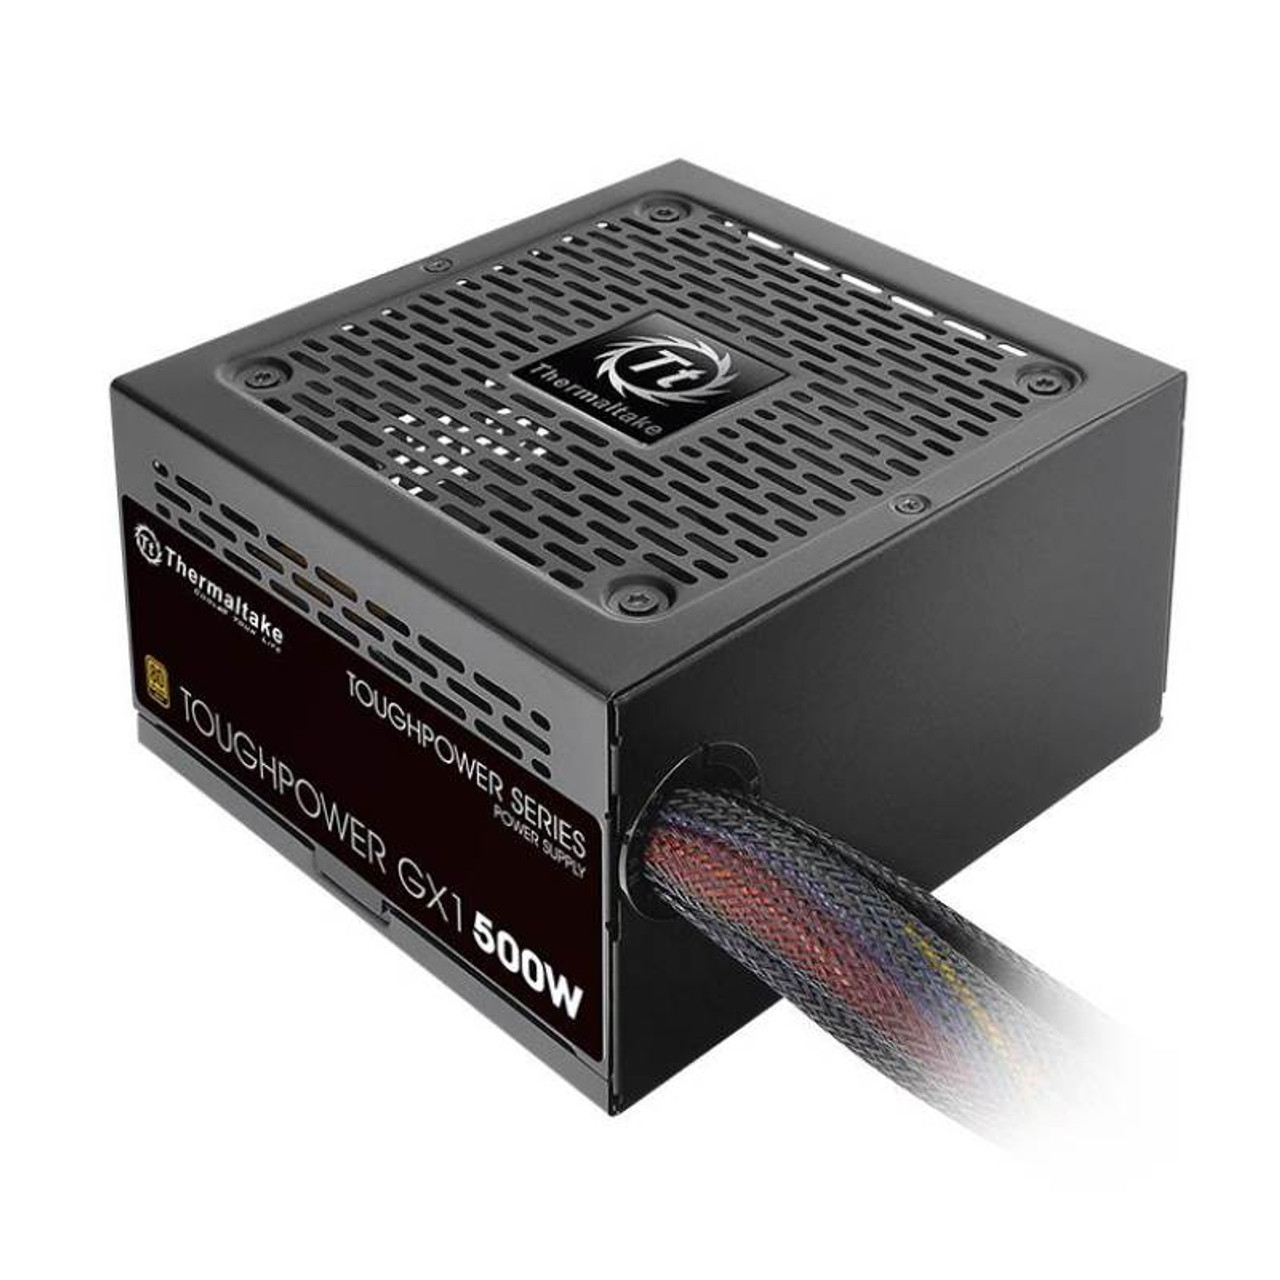 Image for Thermaltake Toughpower GX1 500W 80 PLUS Gold Power Supply CX Computer Superstore